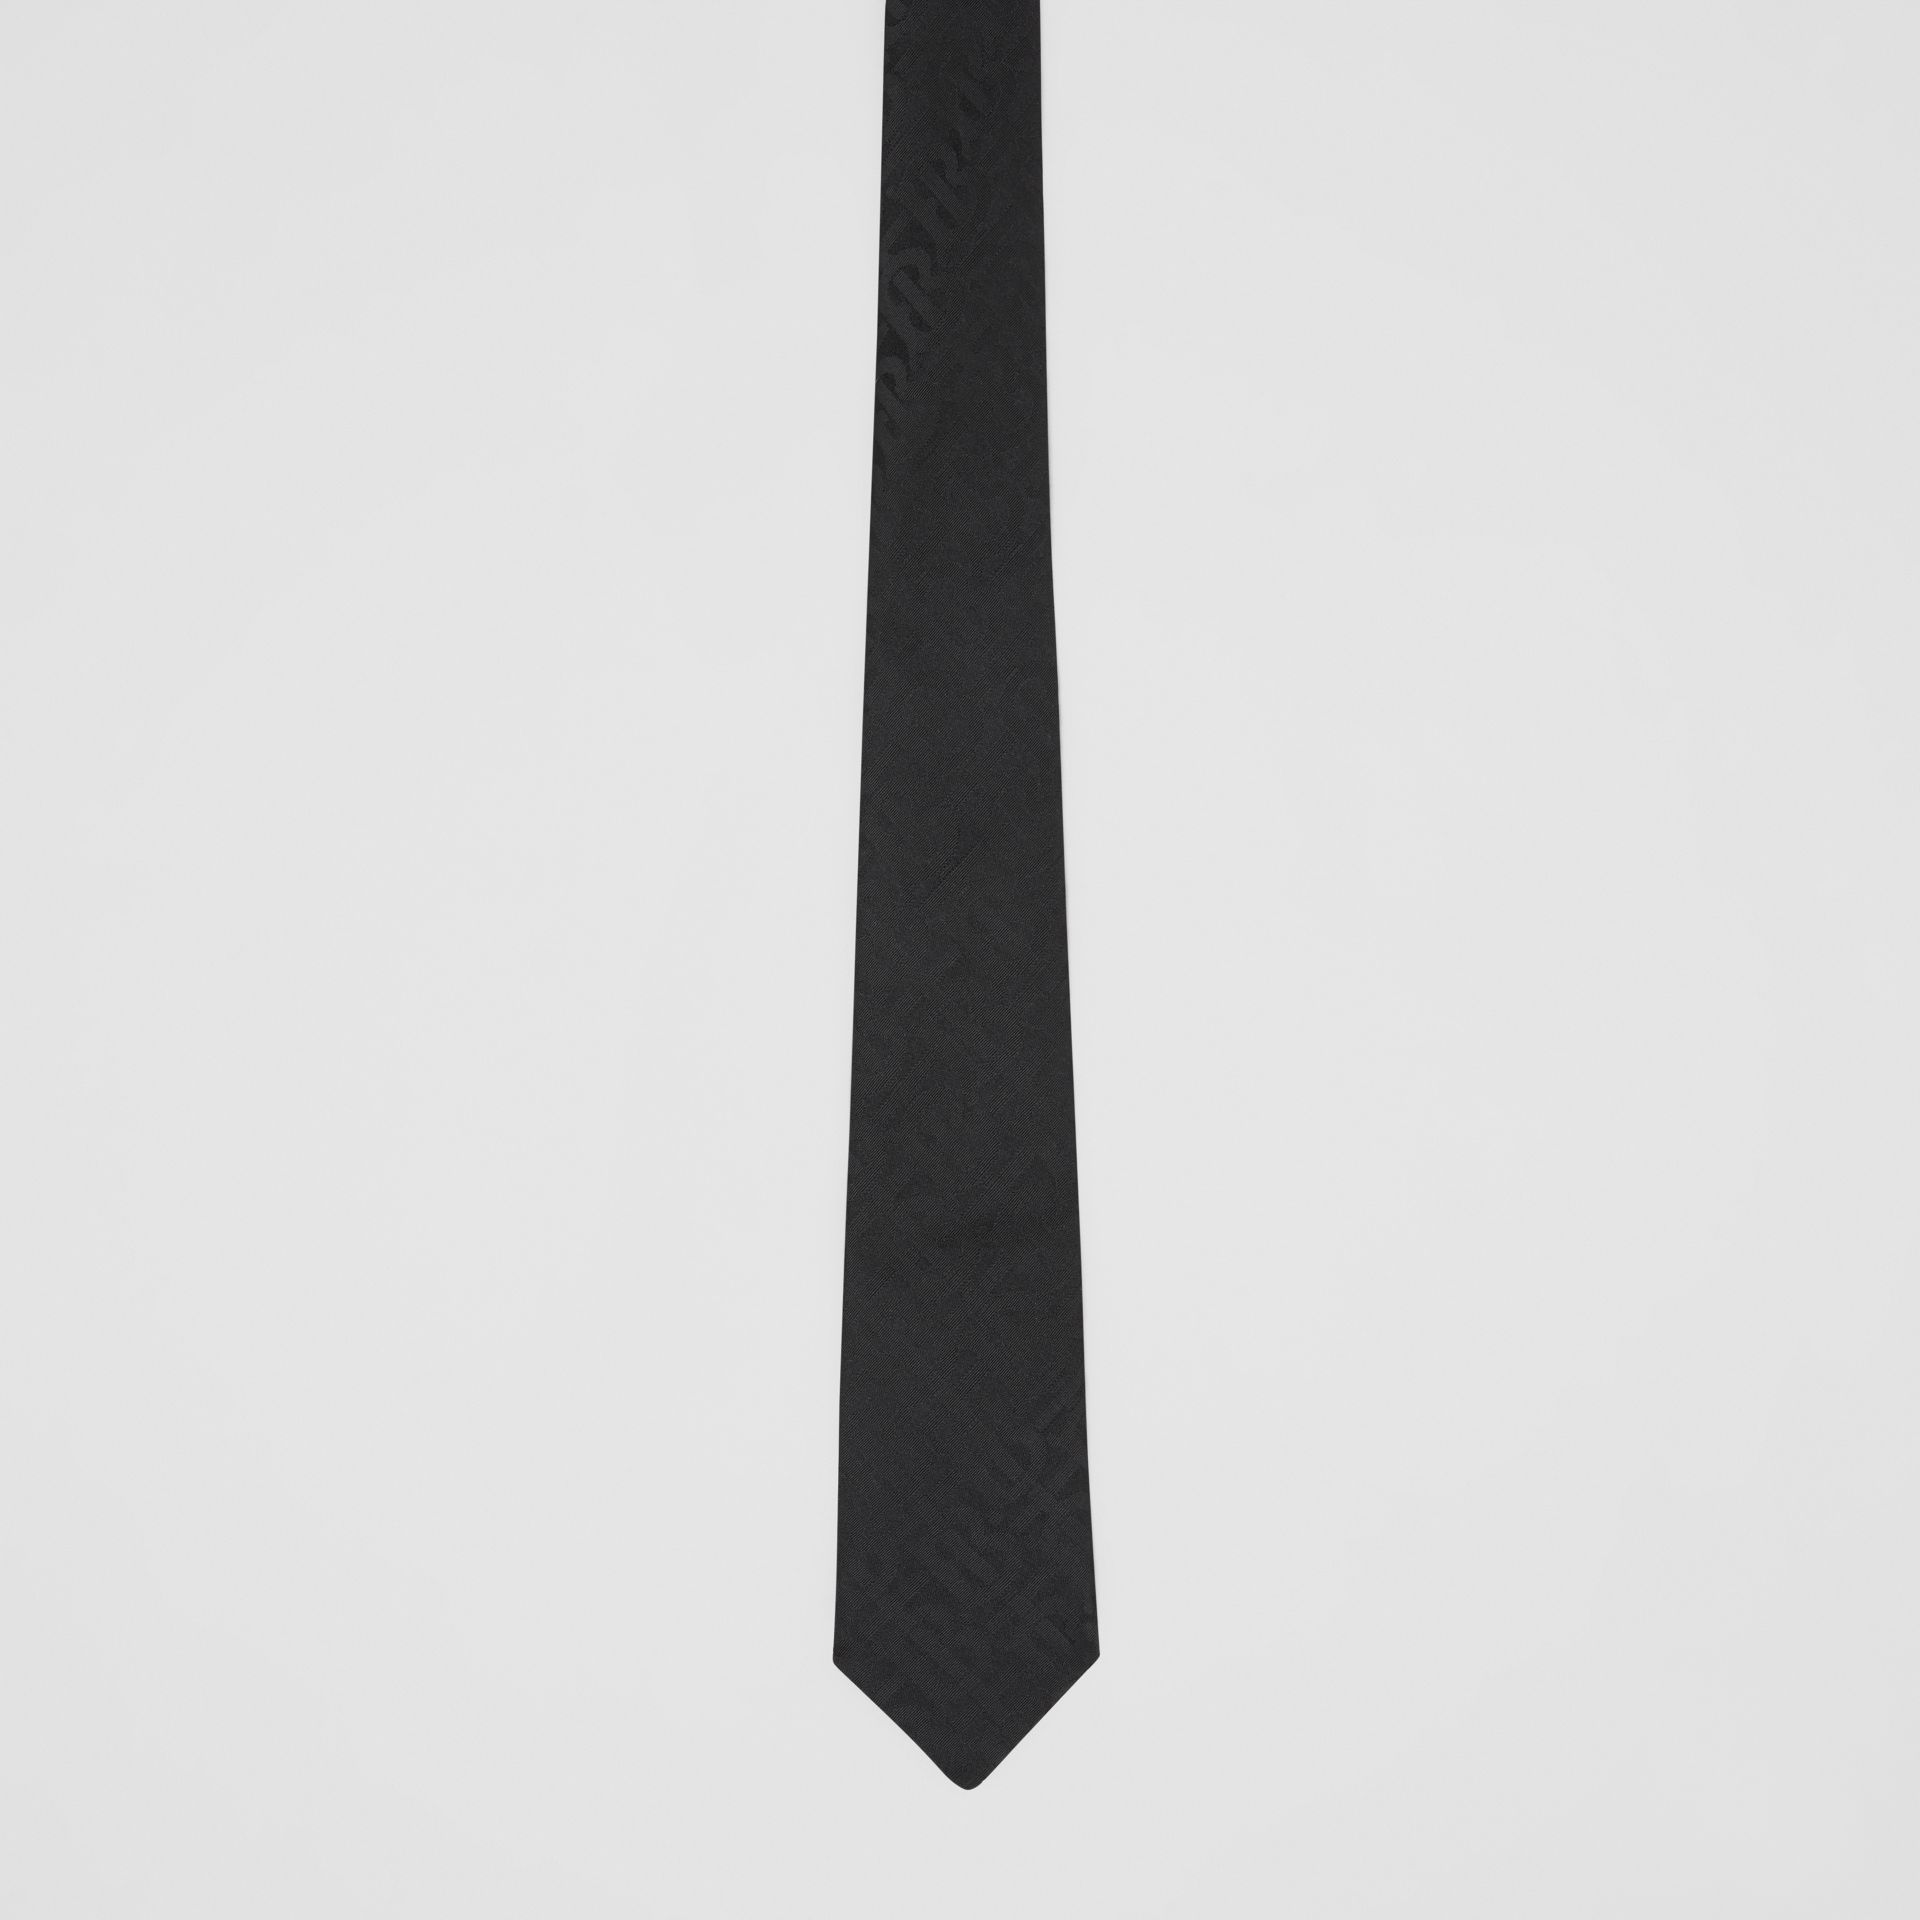 Classic Cut Monogram Silk Jacquard Tie in Black - Men | Burberry - gallery image 3